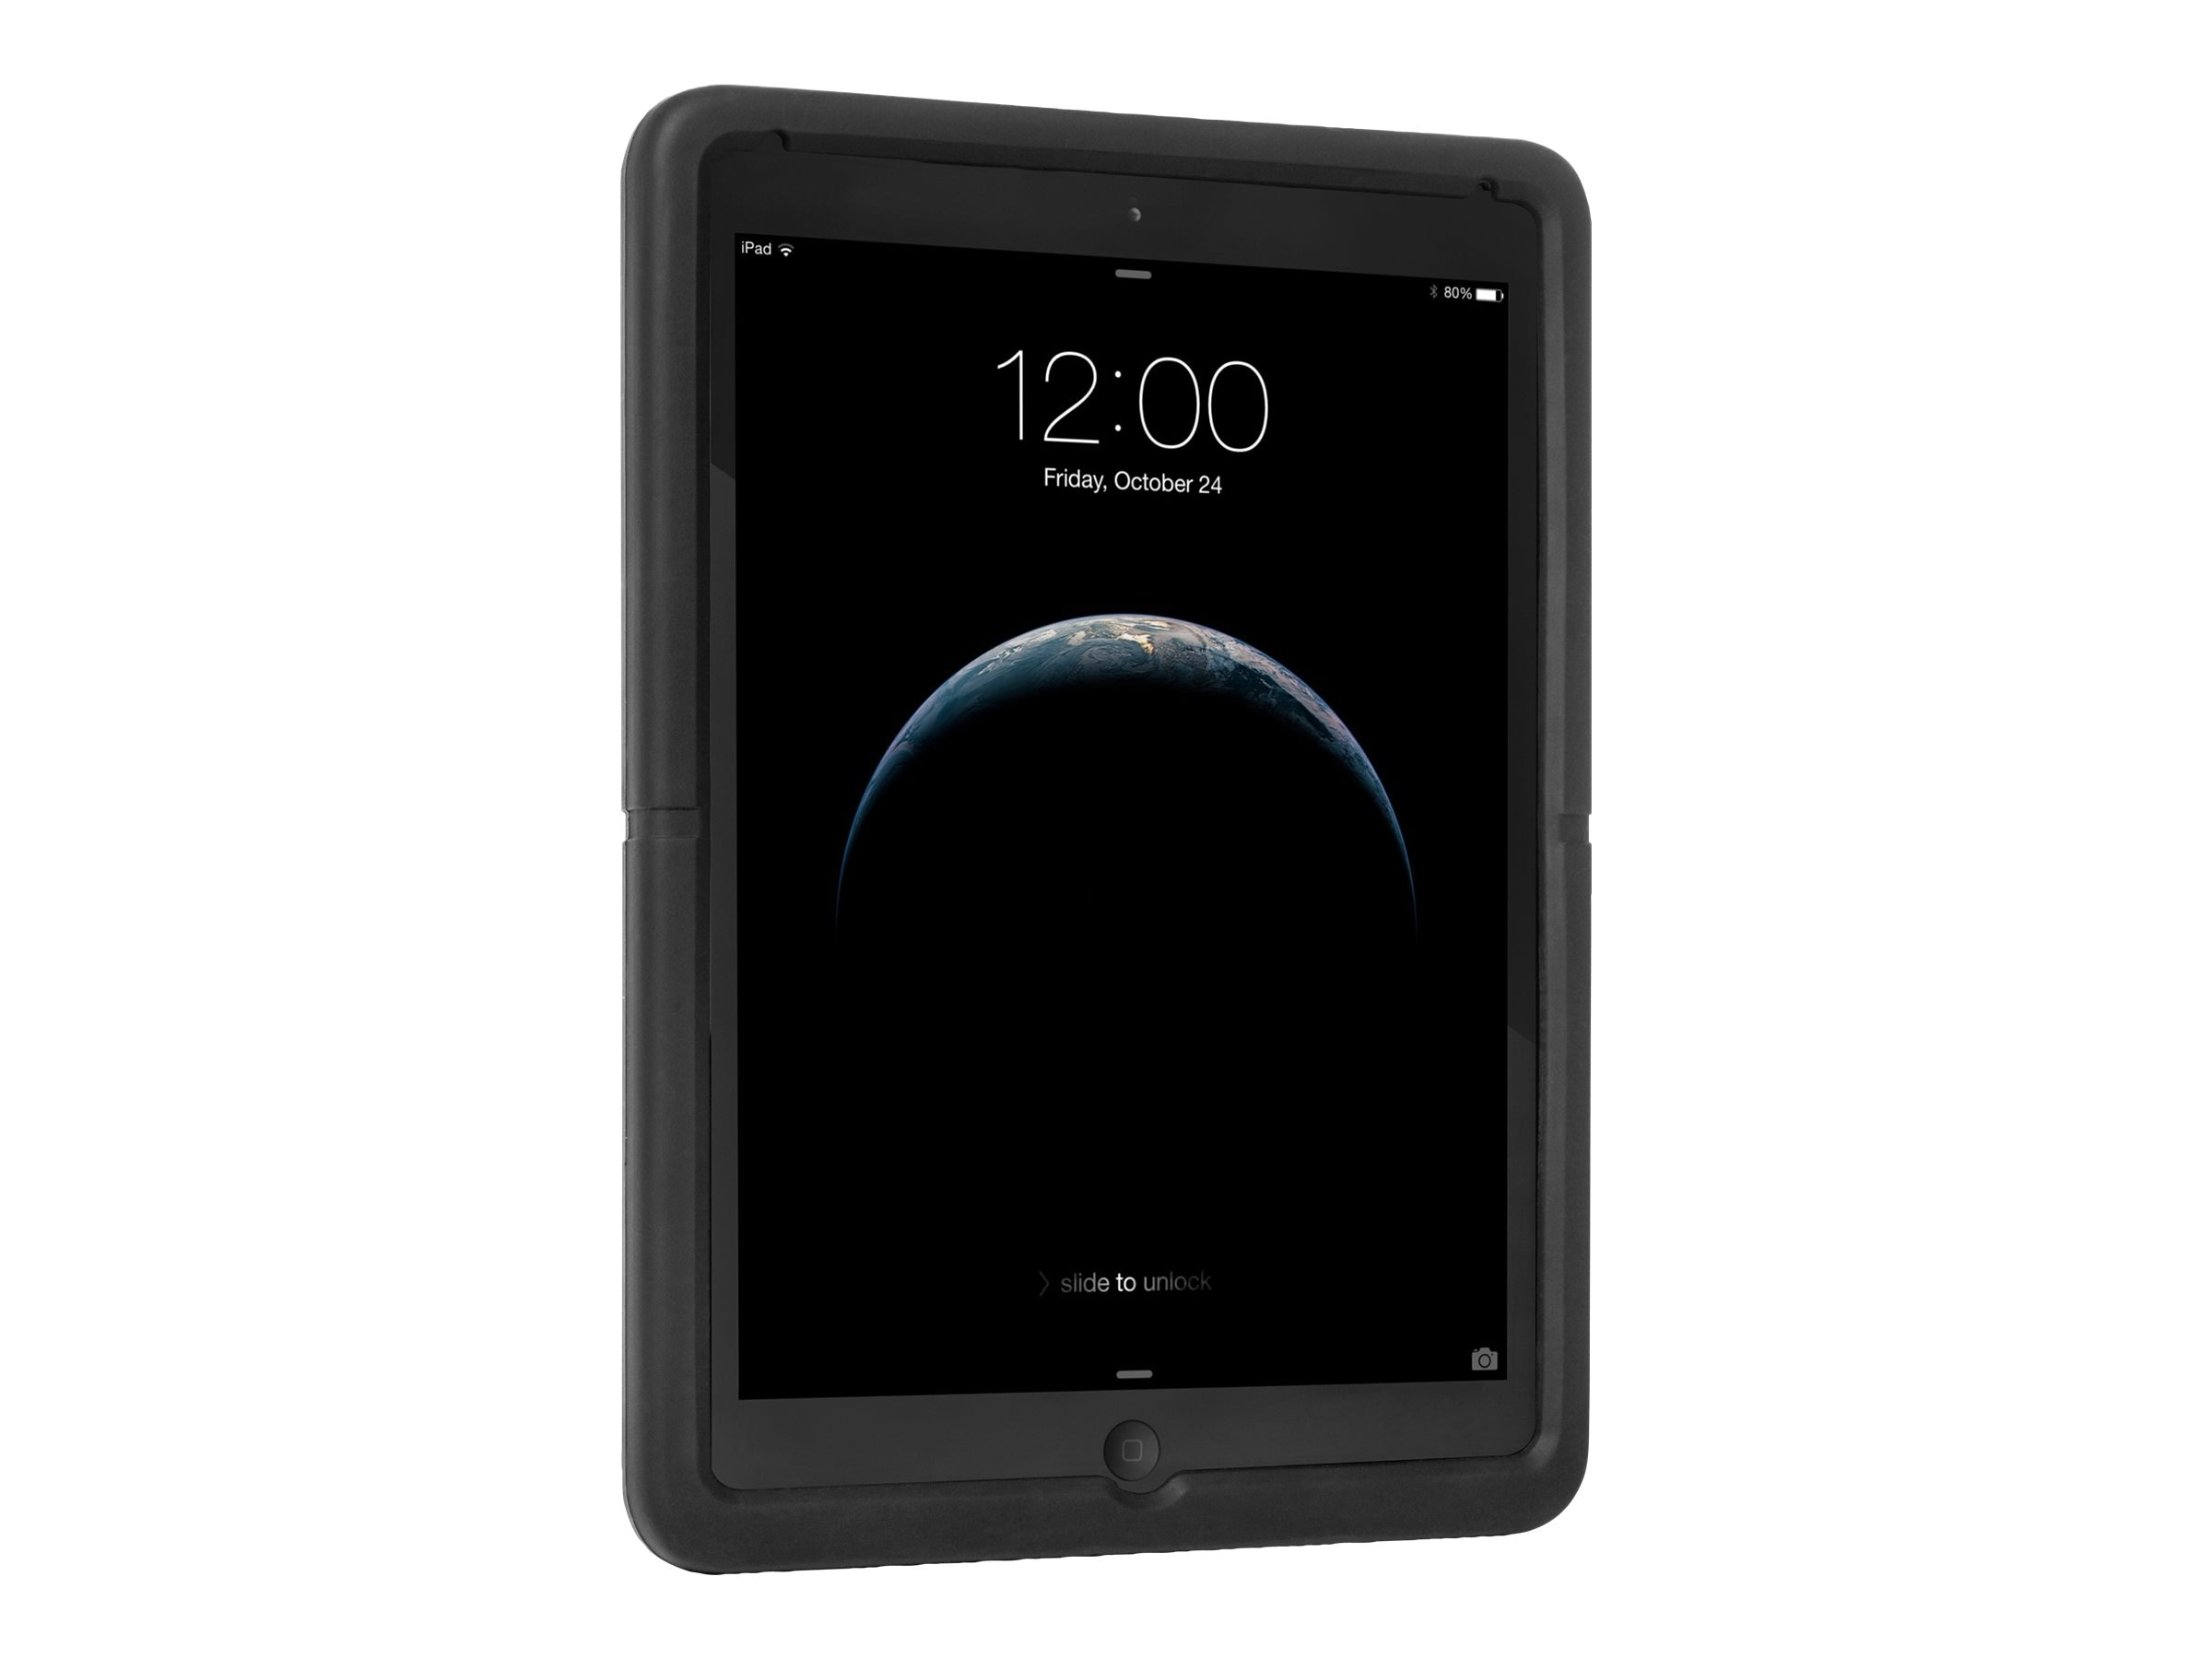 Kensington SecureBack Rugged Enclosure for iPad Air iPad Air 2, Black, K67738WW, 26004958, Carrying Cases - Tablets & eReaders